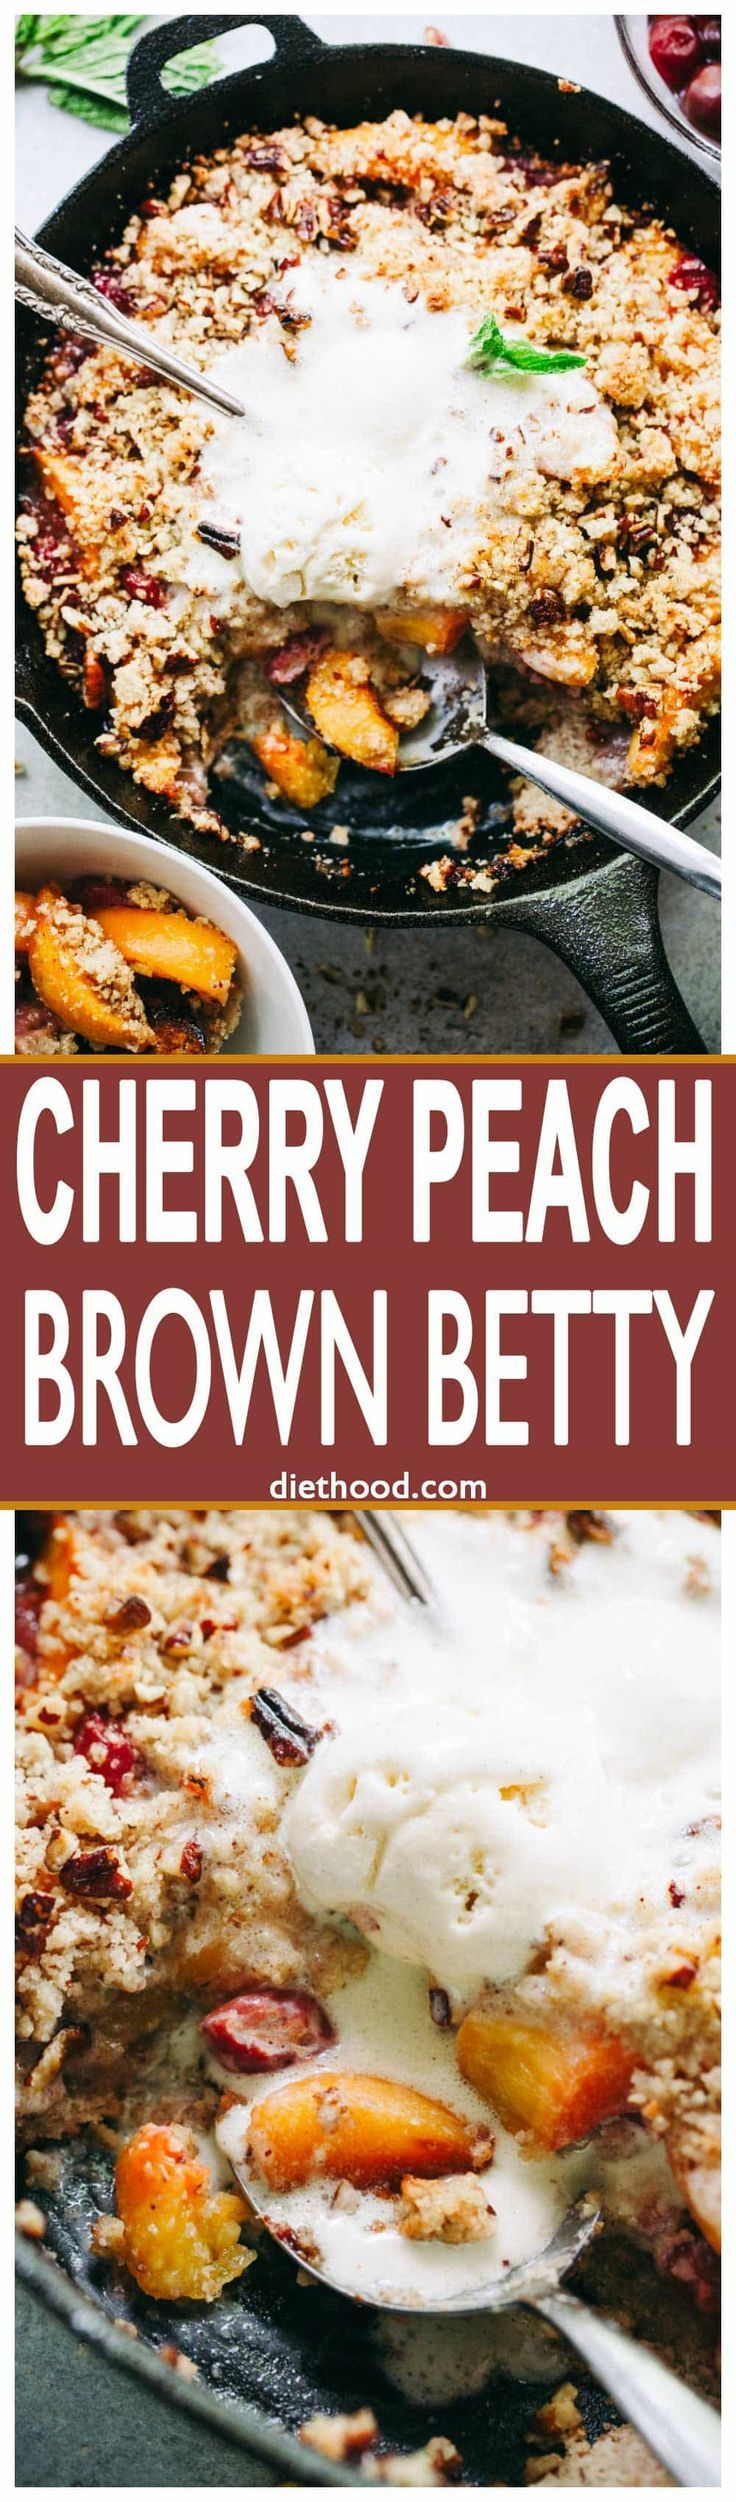 Cherry Peach Brown Betty Recipe – Delicious and easy to make skillet-baked Brown Betty packed with juicy peaches and sweet cherries!